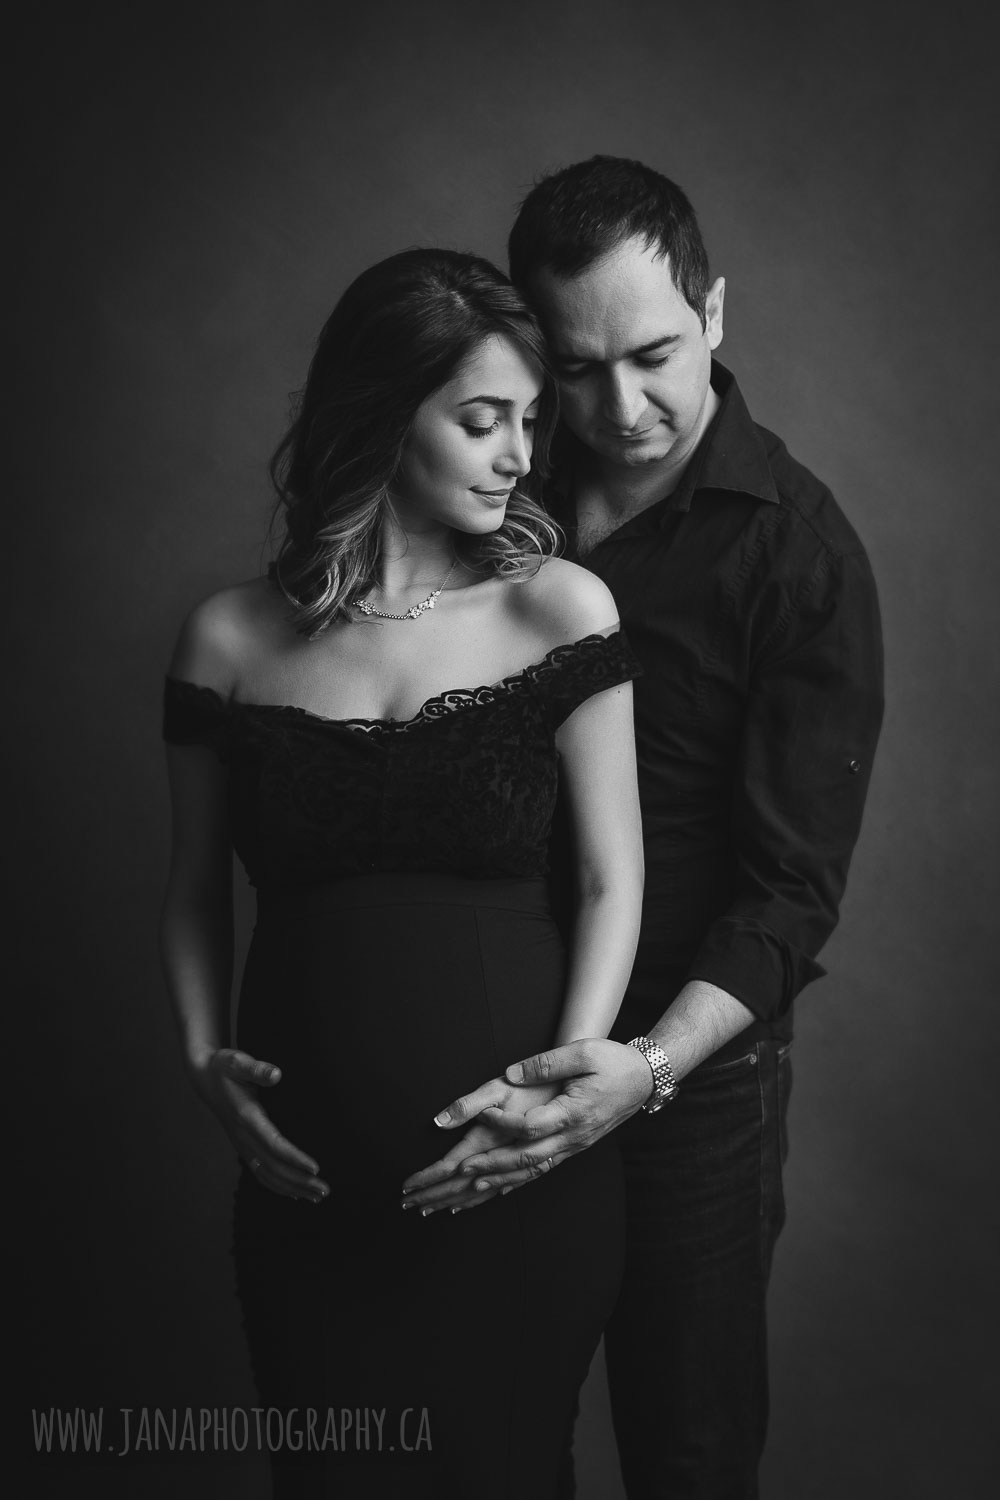 Black and white maternity photography mom standing in front of dad looking down